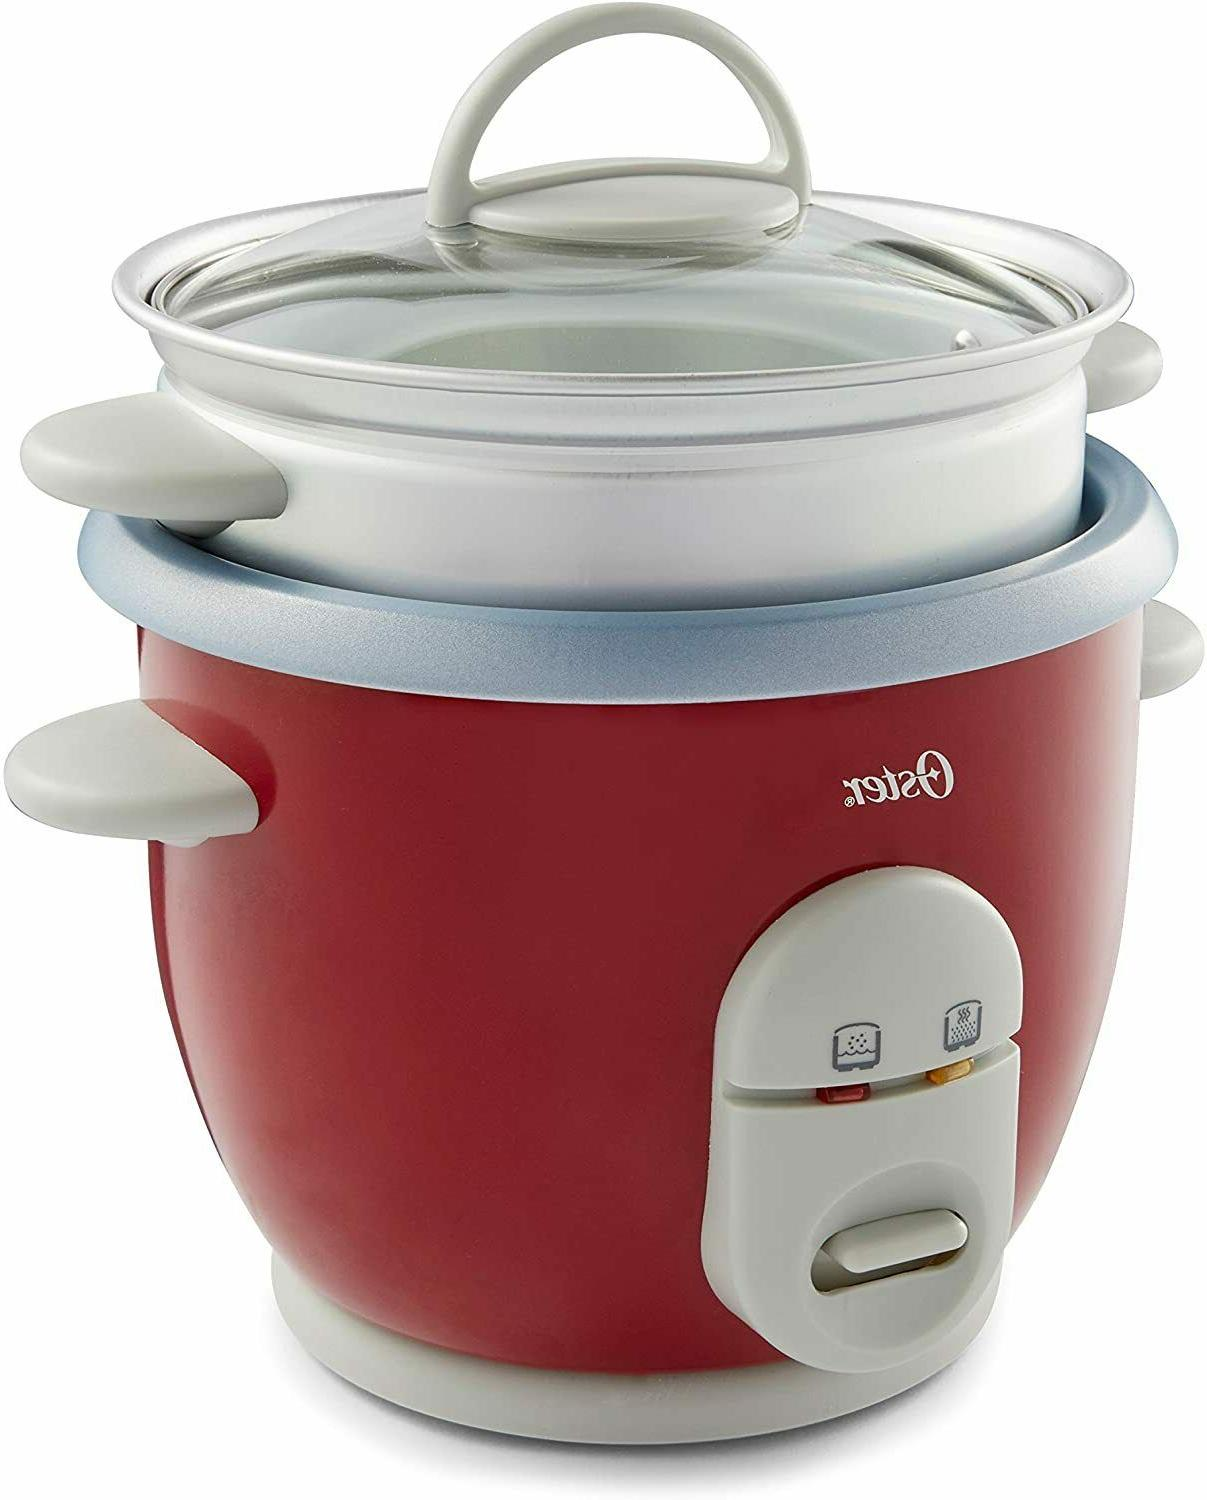 Rice Cooker Oster Stick Pot Red